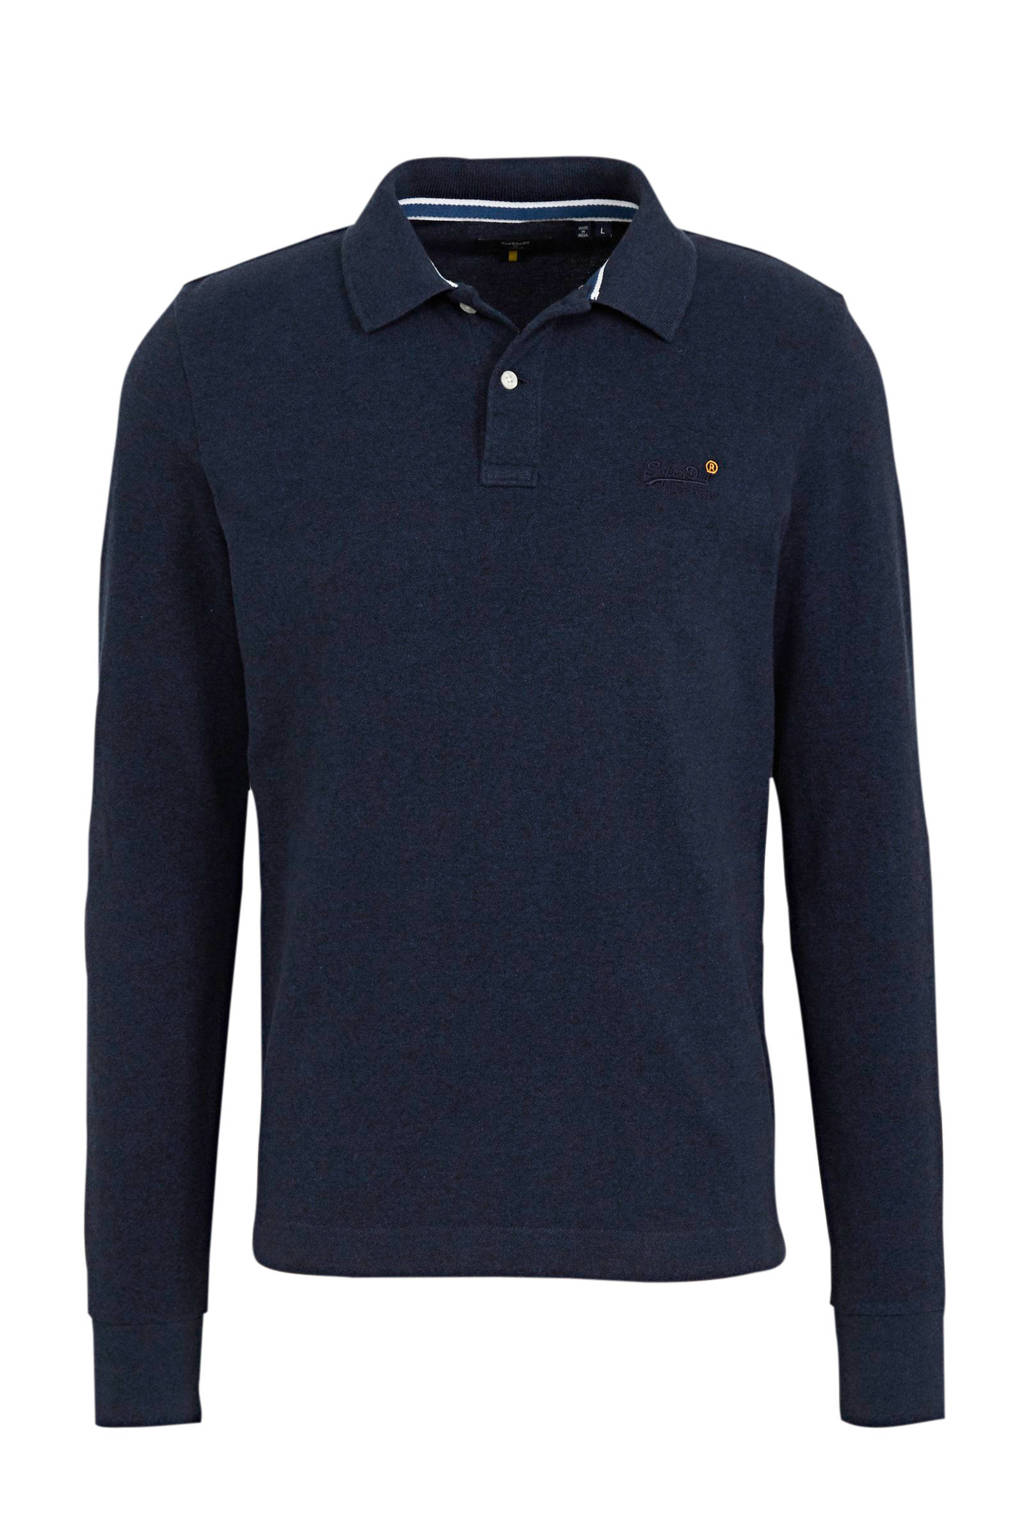 Superdry slim fit polo donkerblauw, Donkerblauw